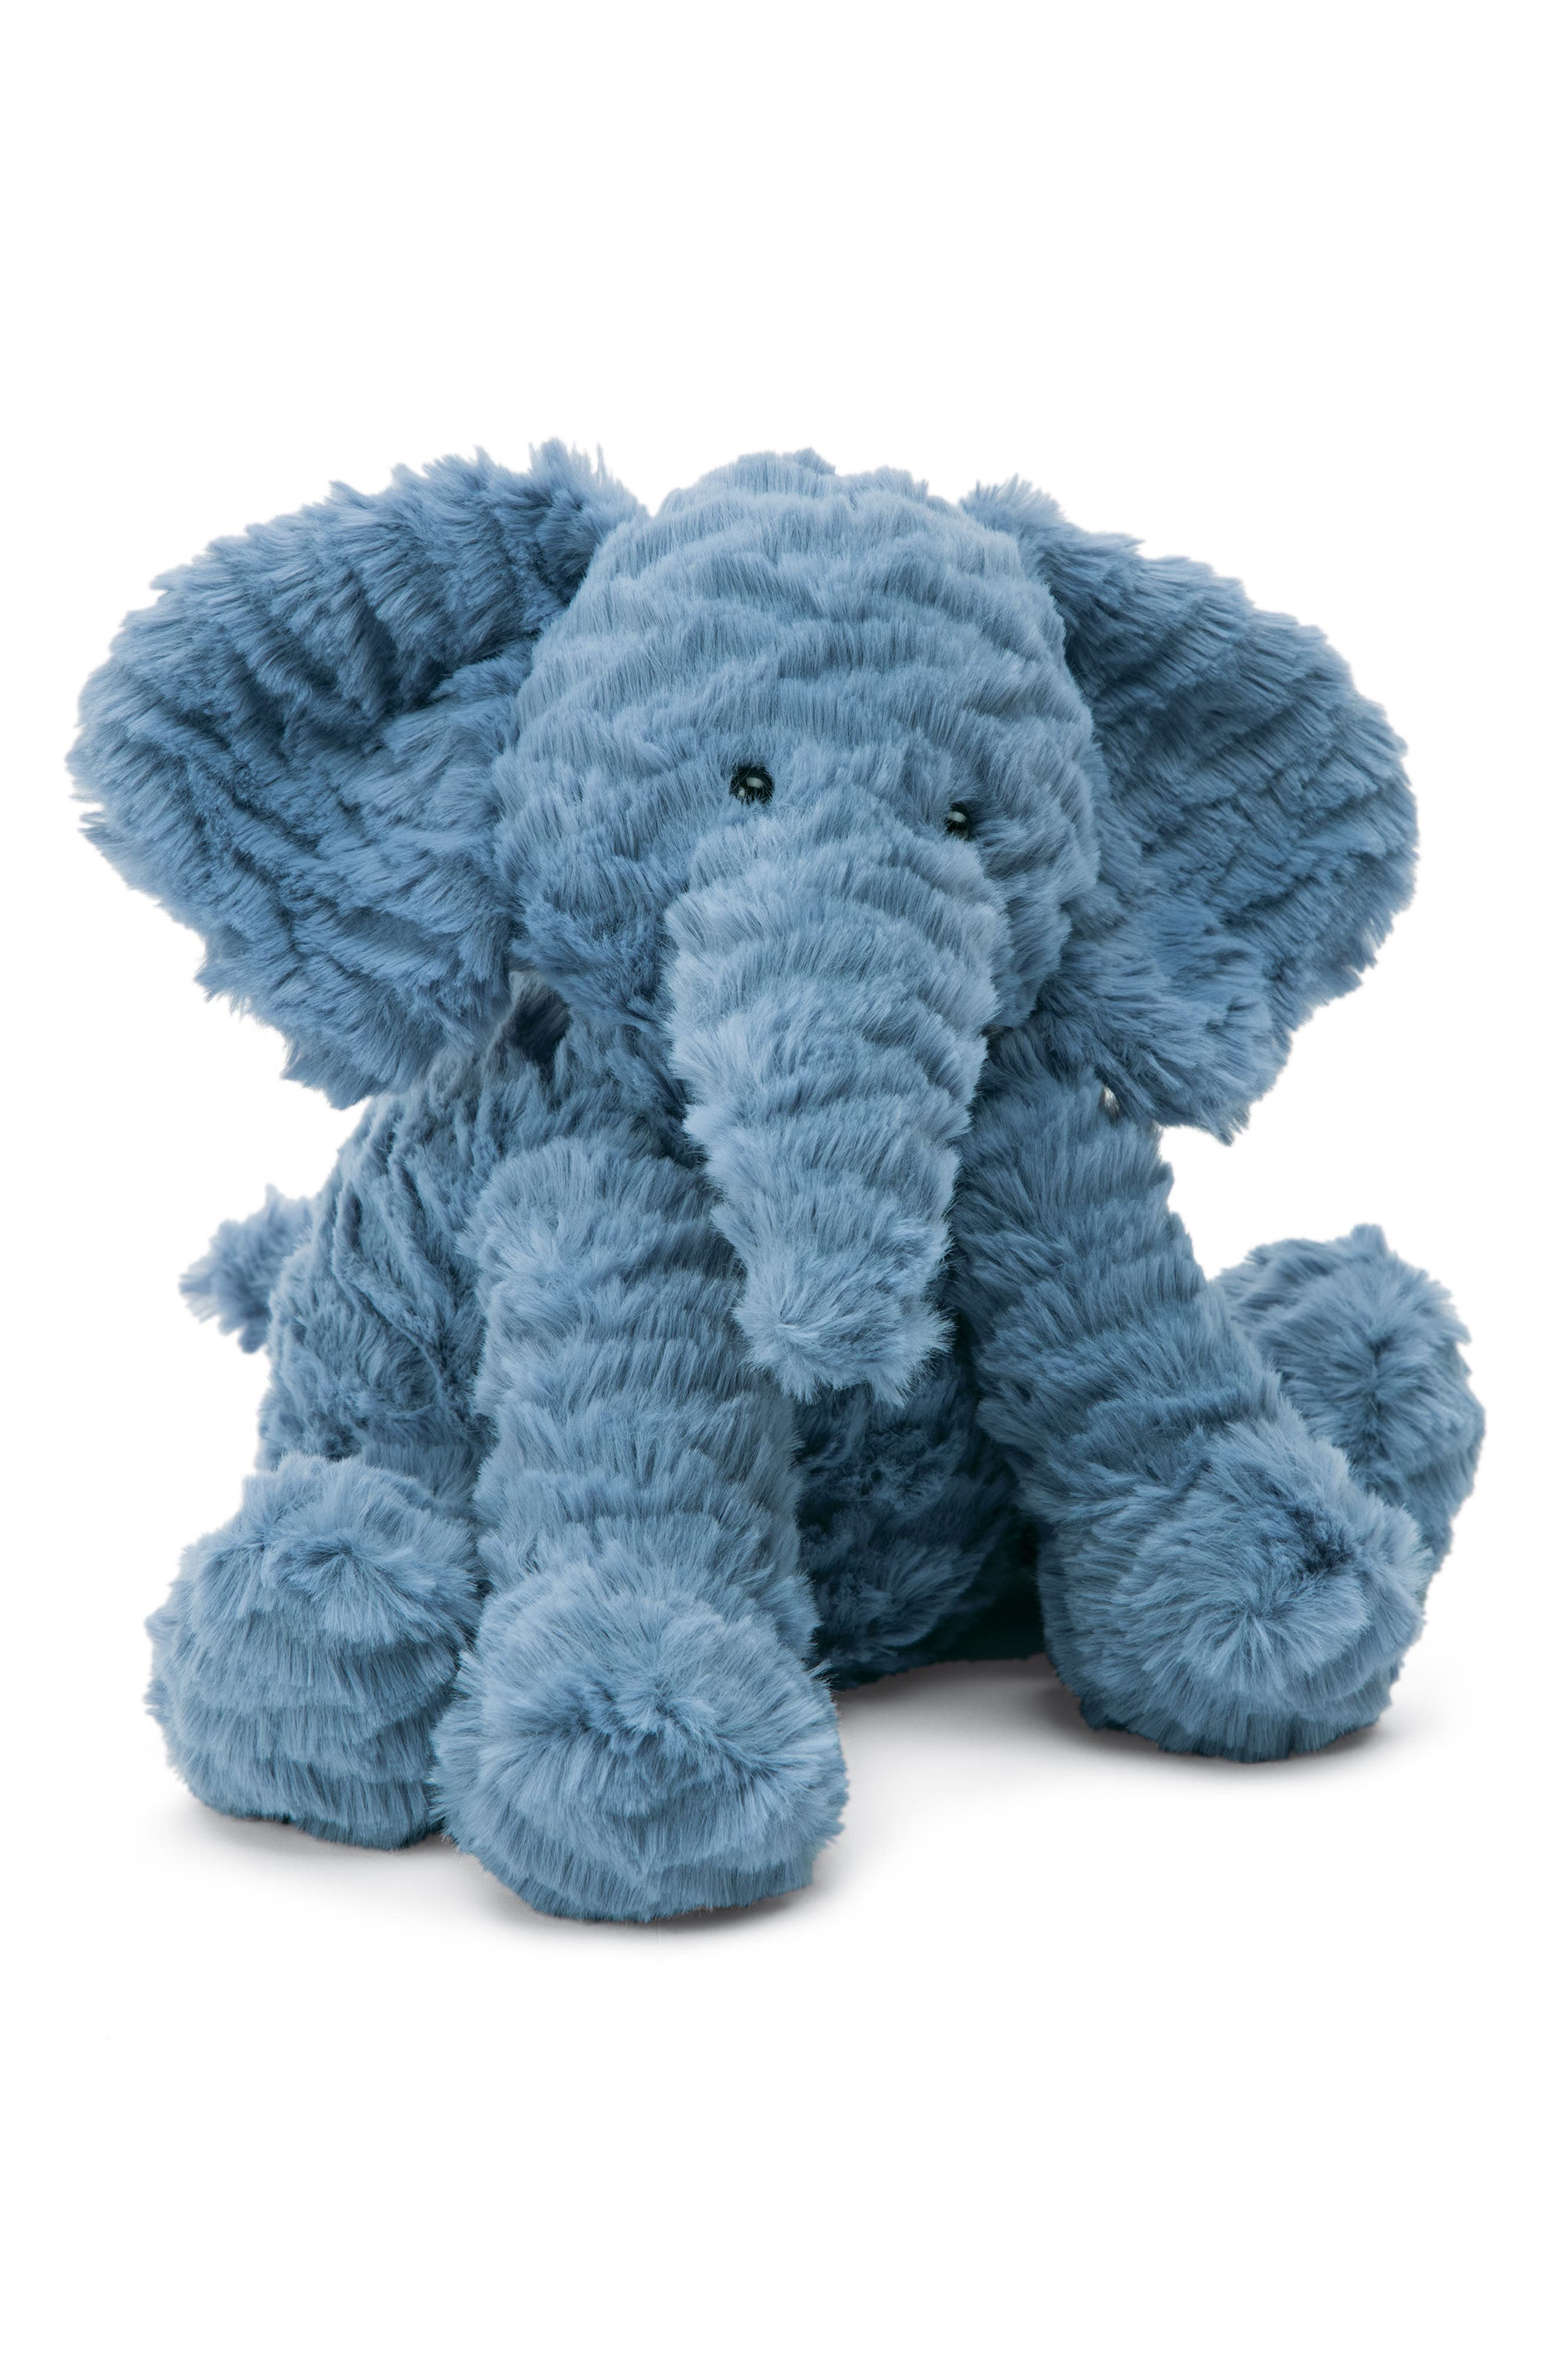 Fuddlewuddle Elephant Stuffed Animal,                             Main thumbnail 1, color,                             450